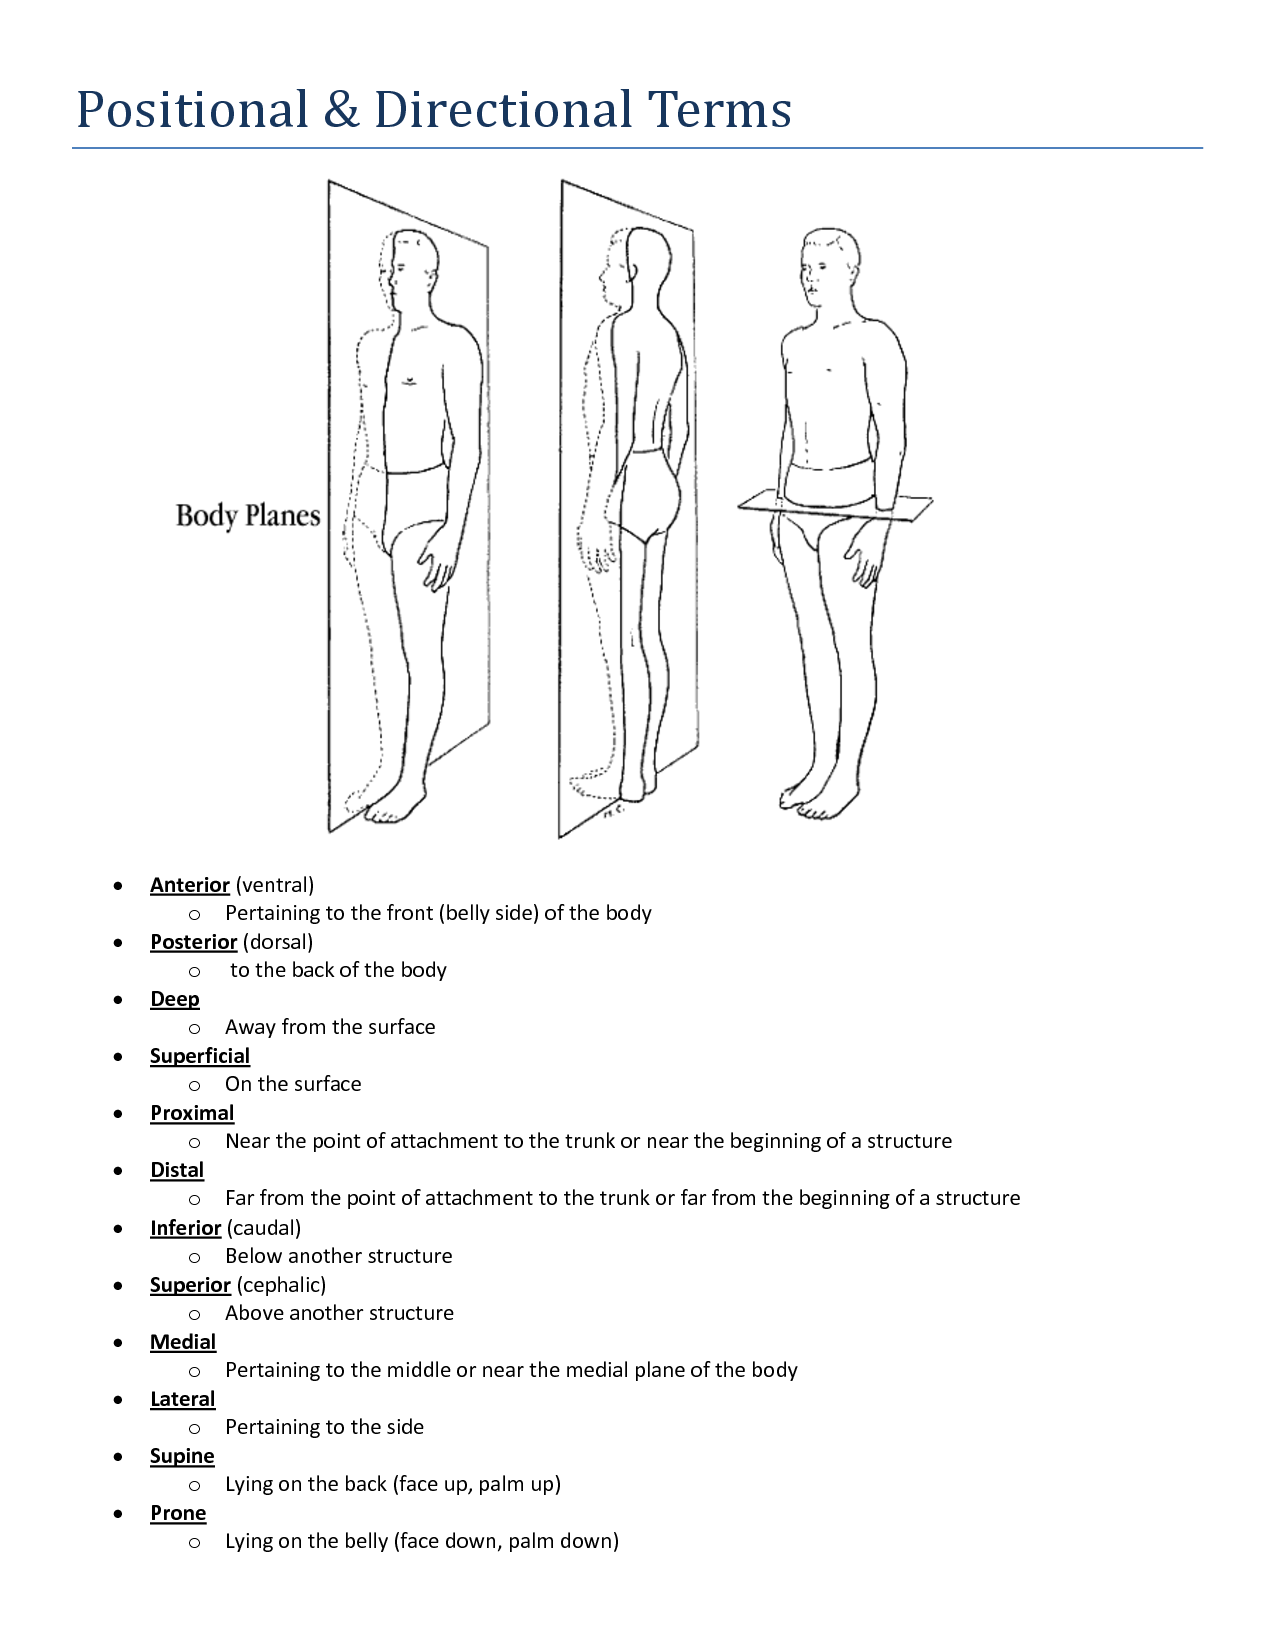 Worksheets Anatomical Directions Worksheet Waytoohuman